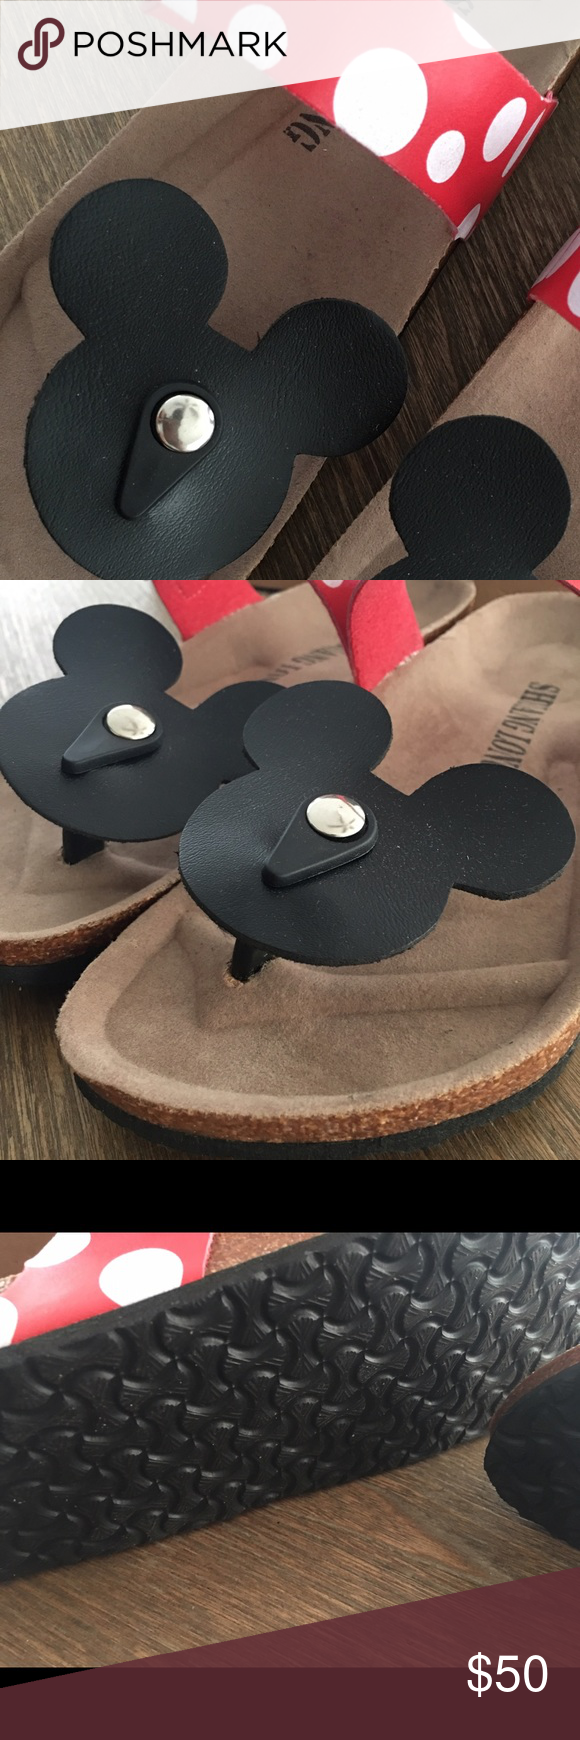 32bc2d4b94e0 Minnie Mouse Disney Birkenstock-ish Sandles New